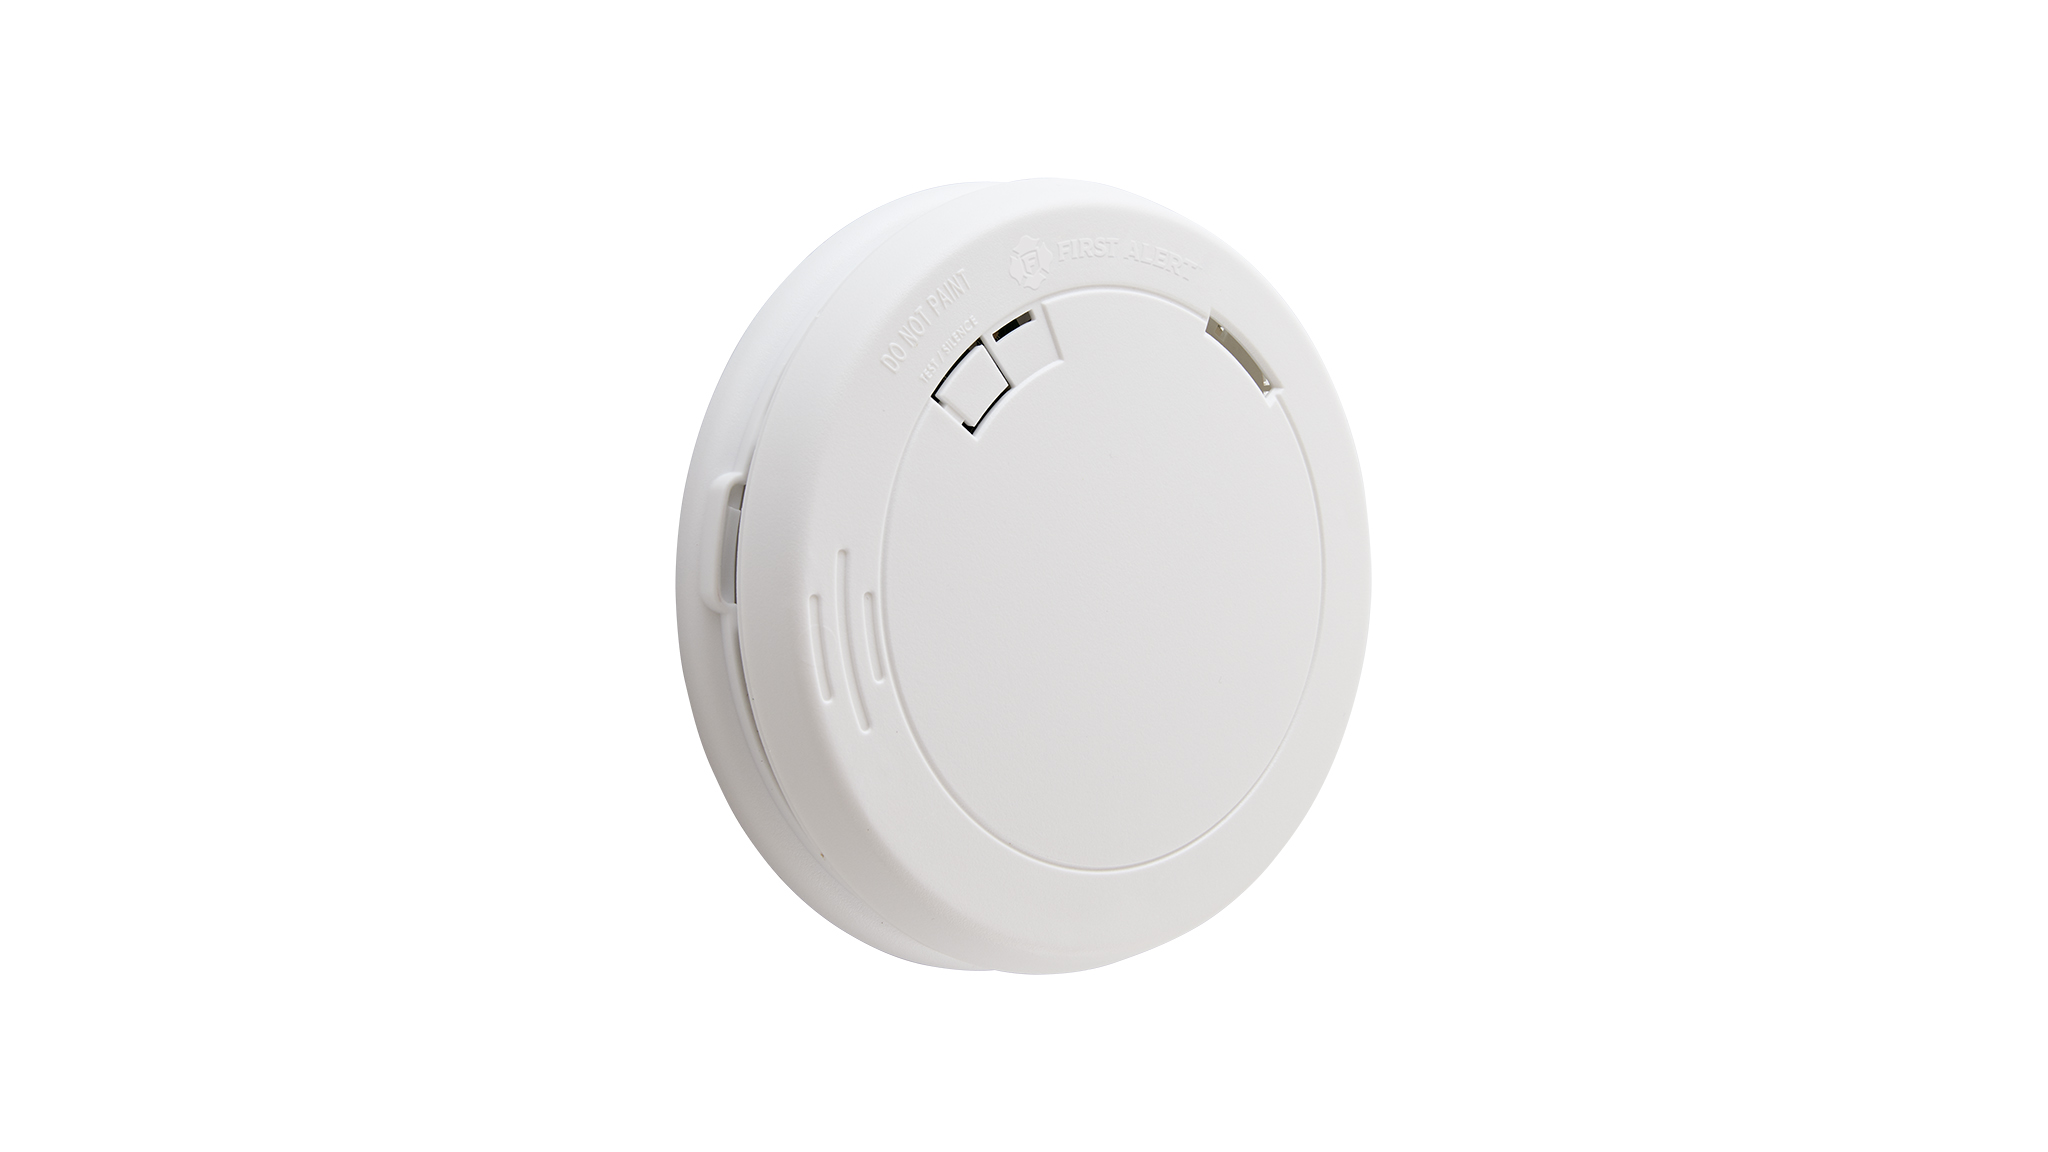 The First Alert 10-Year Smoke Alarm (PR710) features a sealed, 10-year battery.